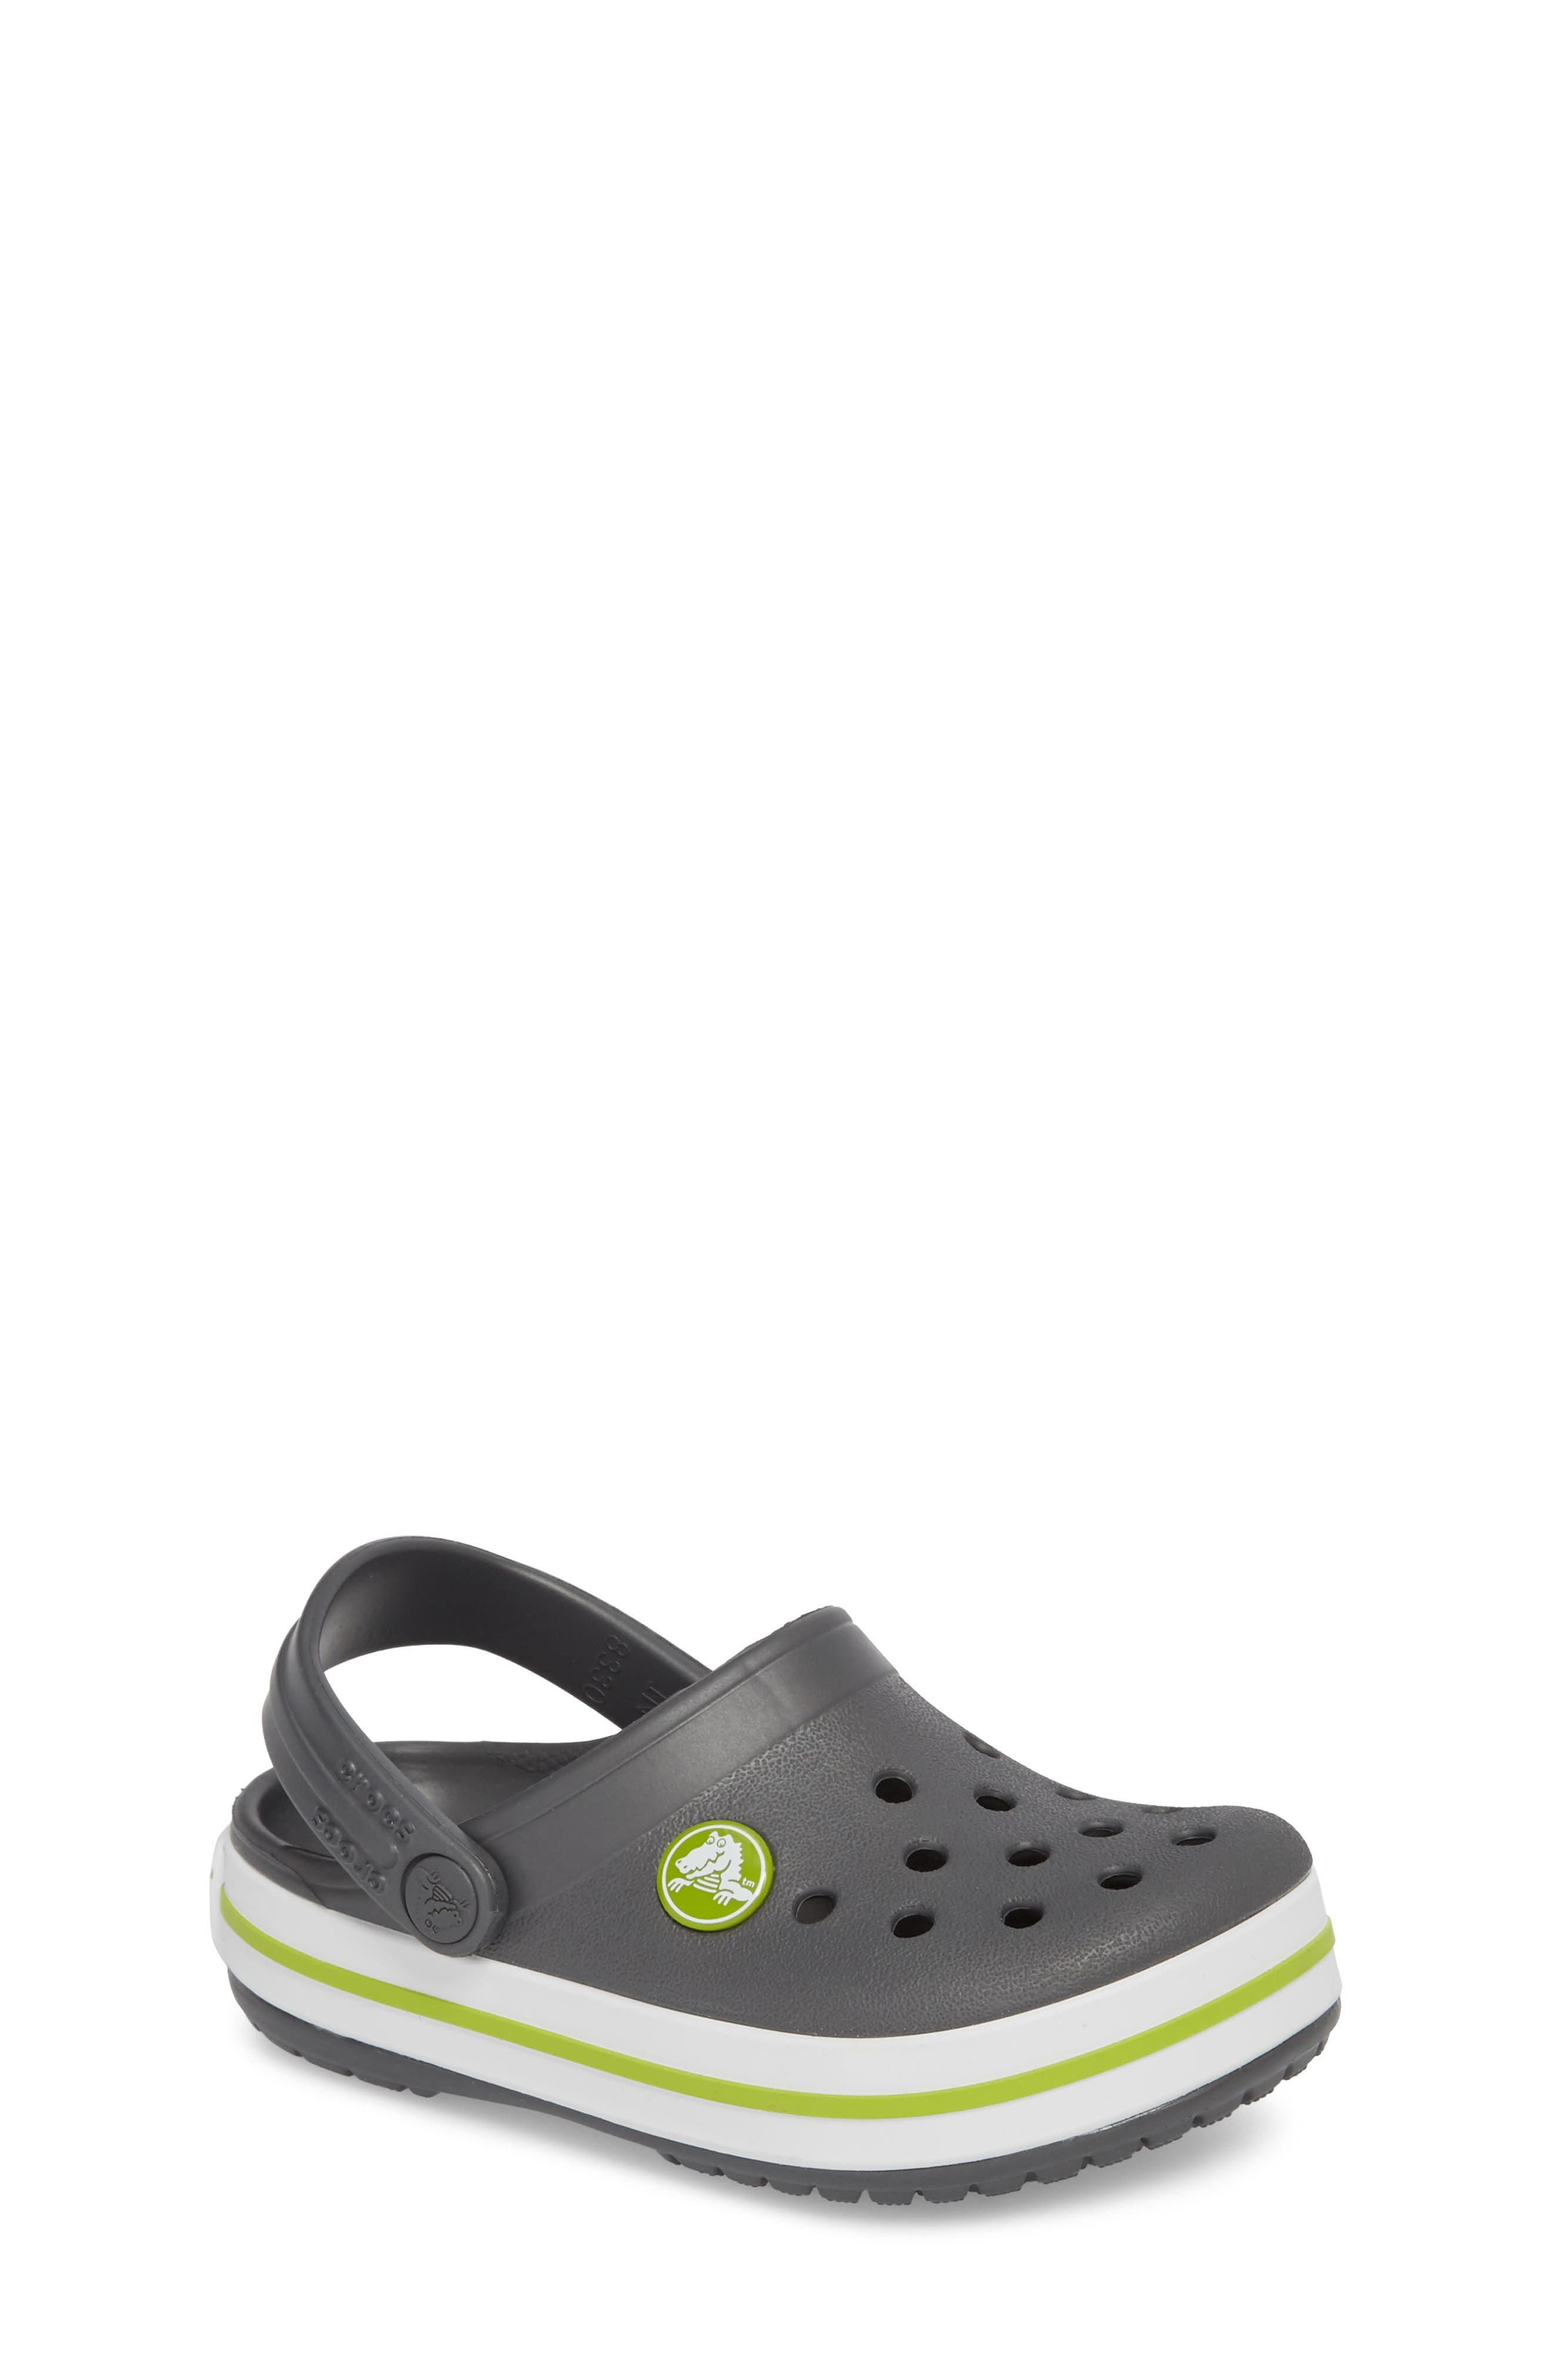 Crocband Clog,                         Main,                         color, GRAPHITE/ GREEN